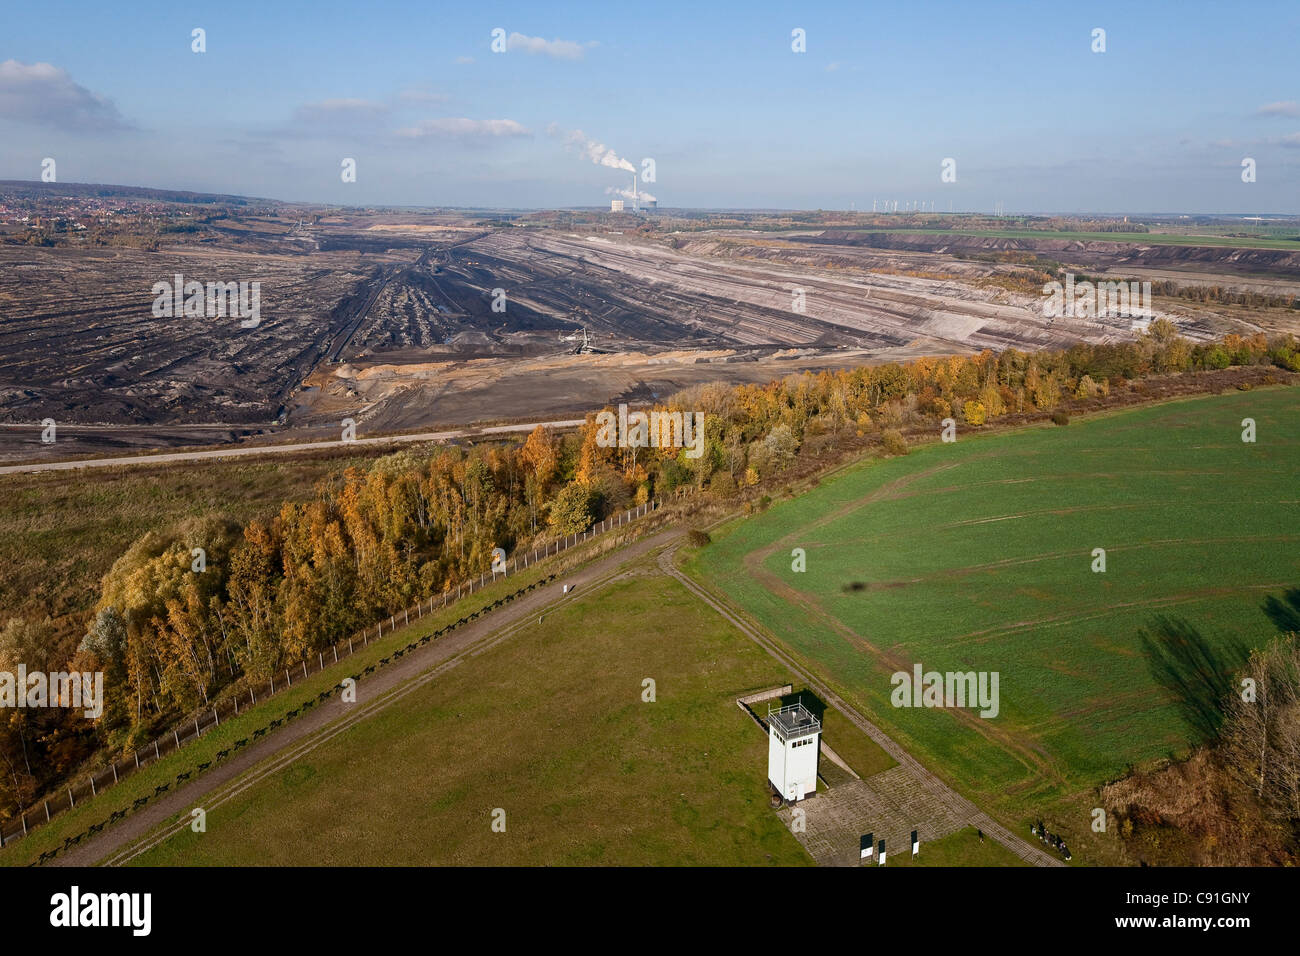 Aerial view of the former GDR watch tower on the former border and lignite mining, Schoeningen, Lower Saxony, Germany - Stock Image